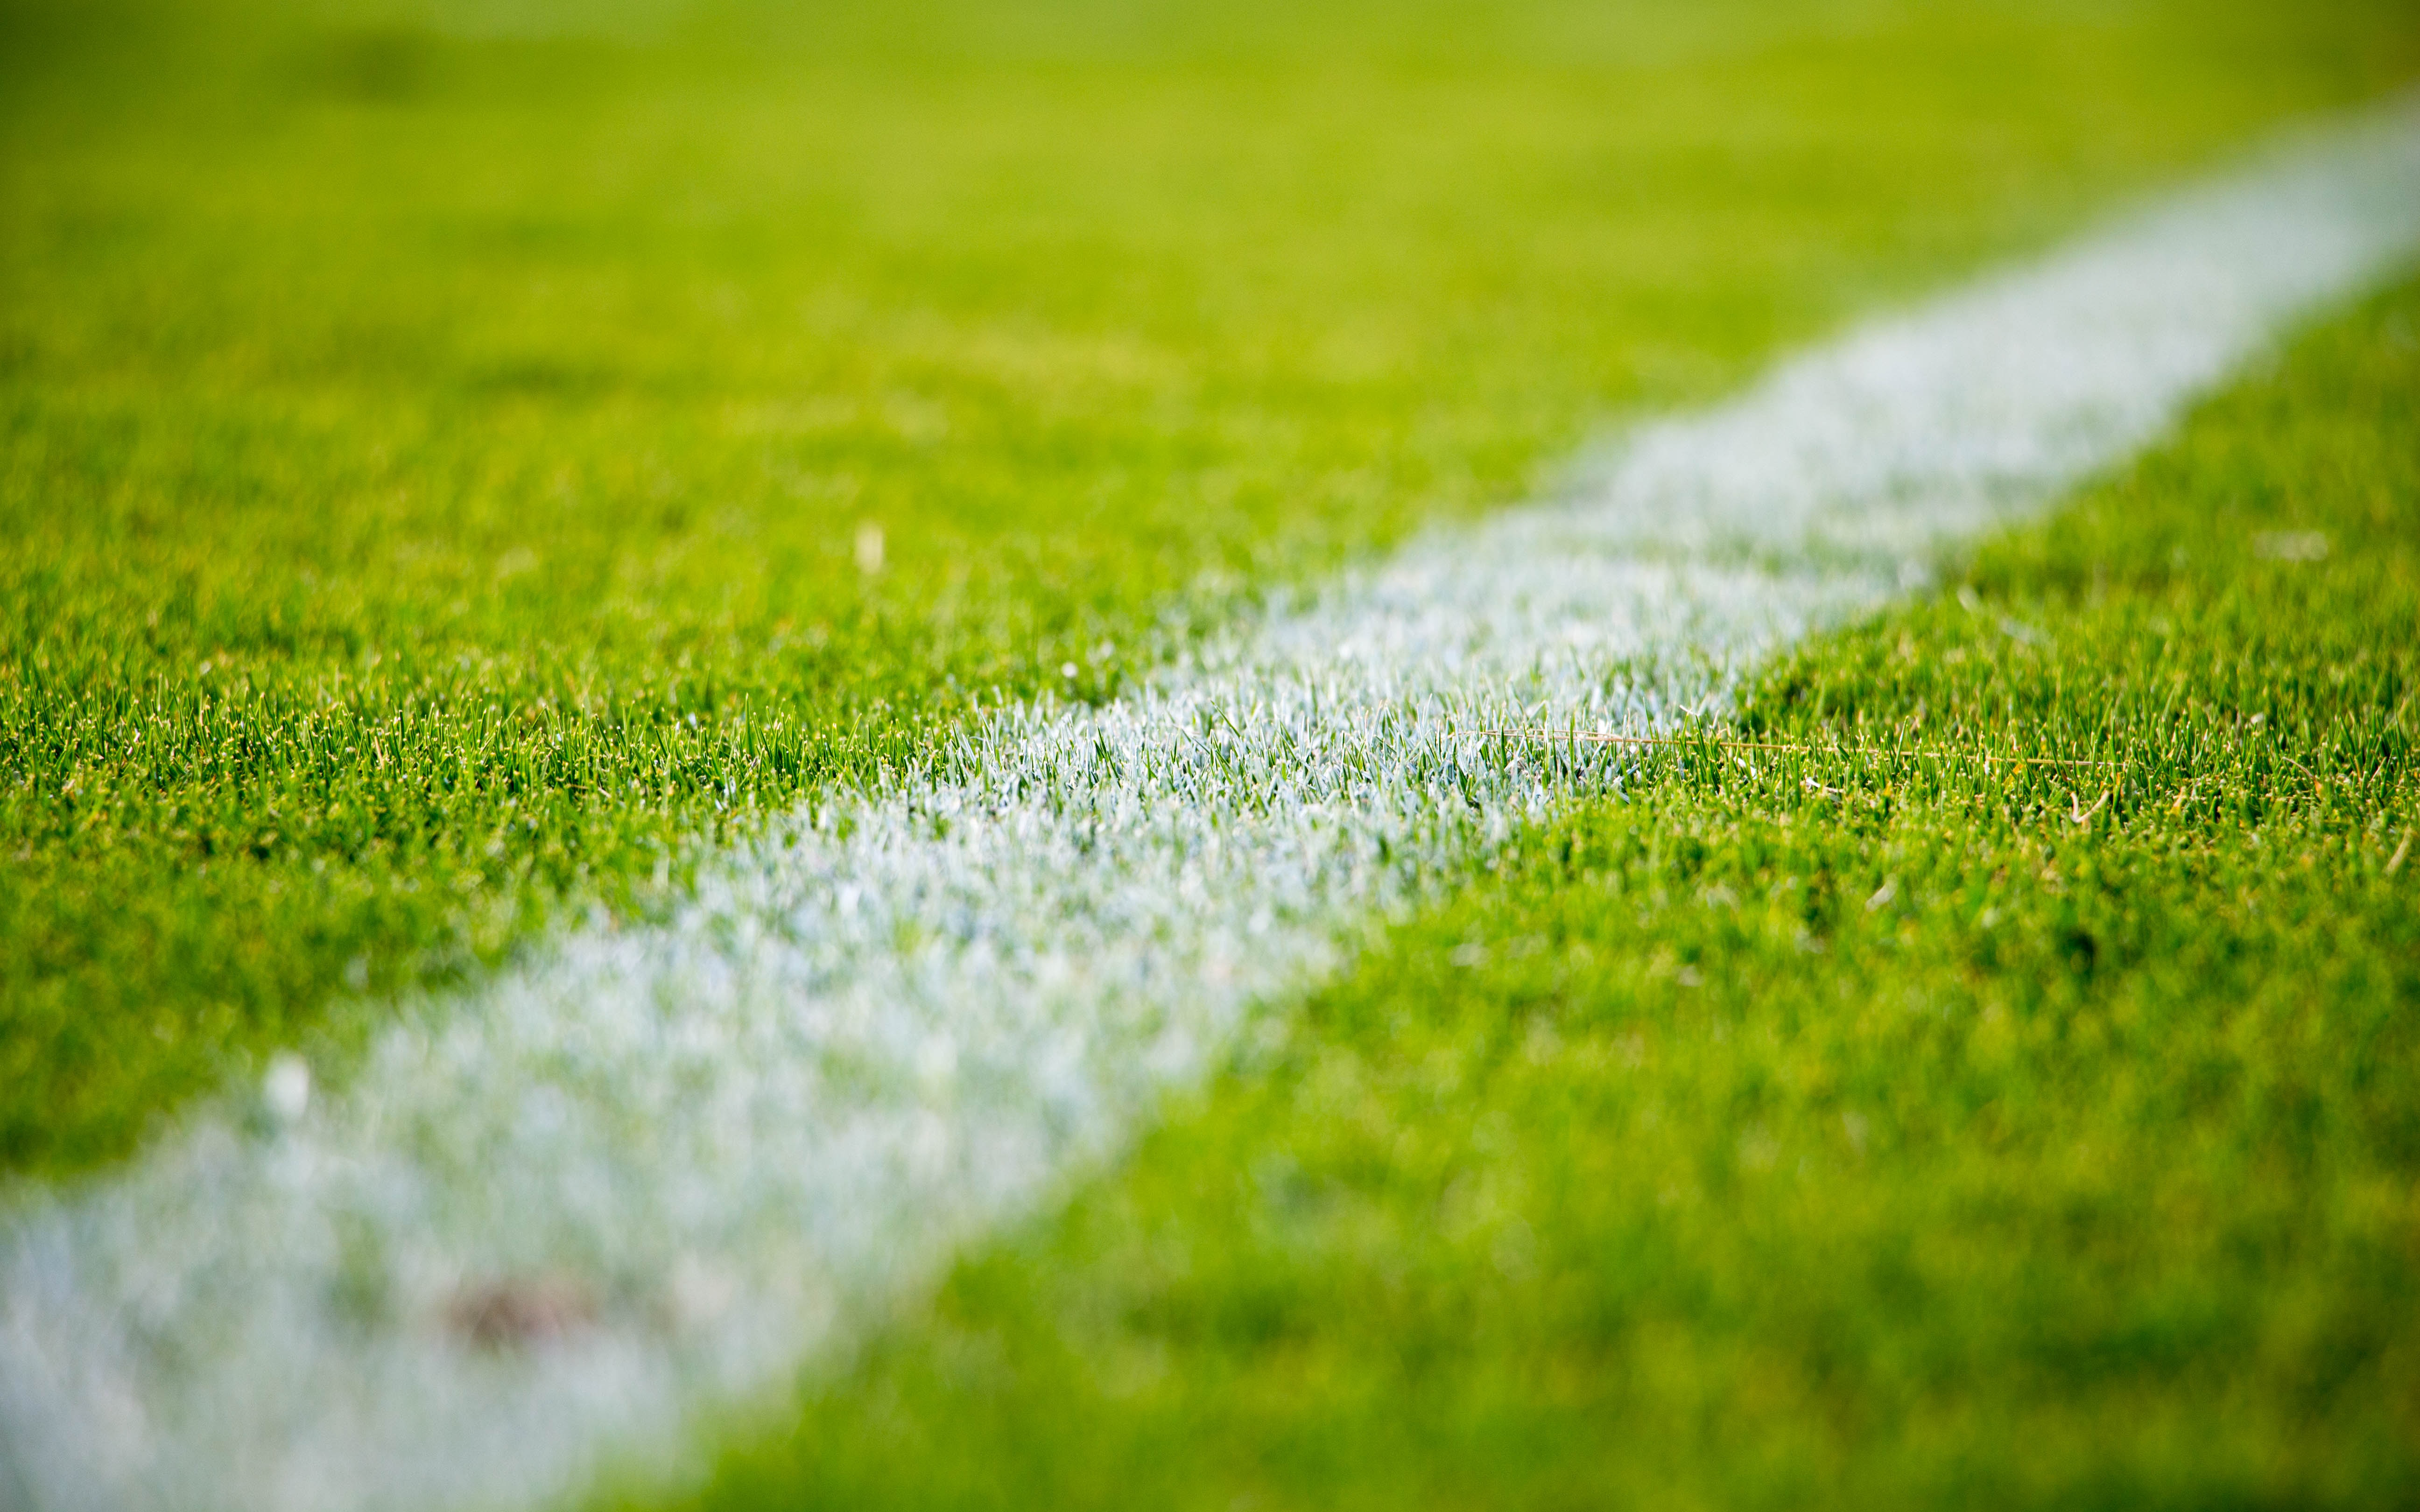 White soccer line painted on grassy field